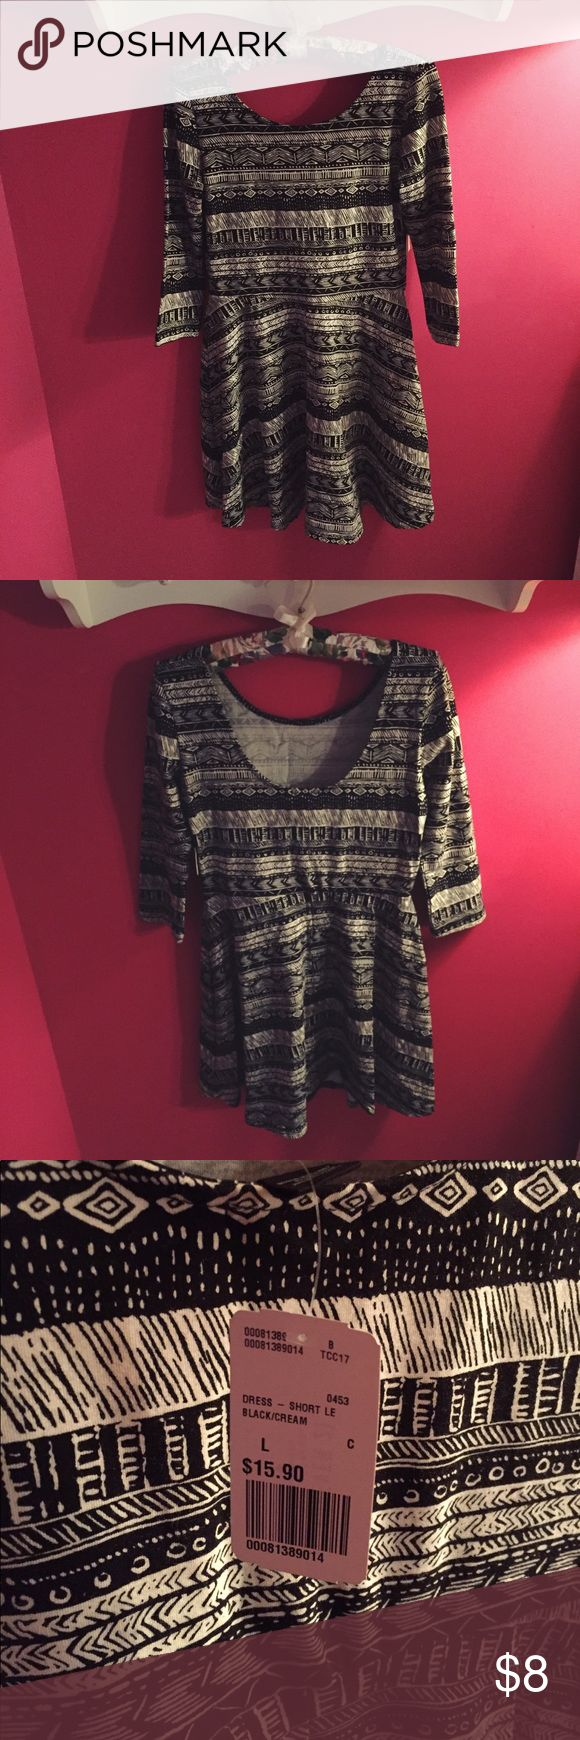 NWT F21 tribal 3/4 sleeve dress!! A fun Aztec inspired dress from F21! Brand new, tags still attached. Scoop neck in the back. Bundle with other F21, AEO, & Aeropostale items for further discount. Forever 21 Dresses Mini